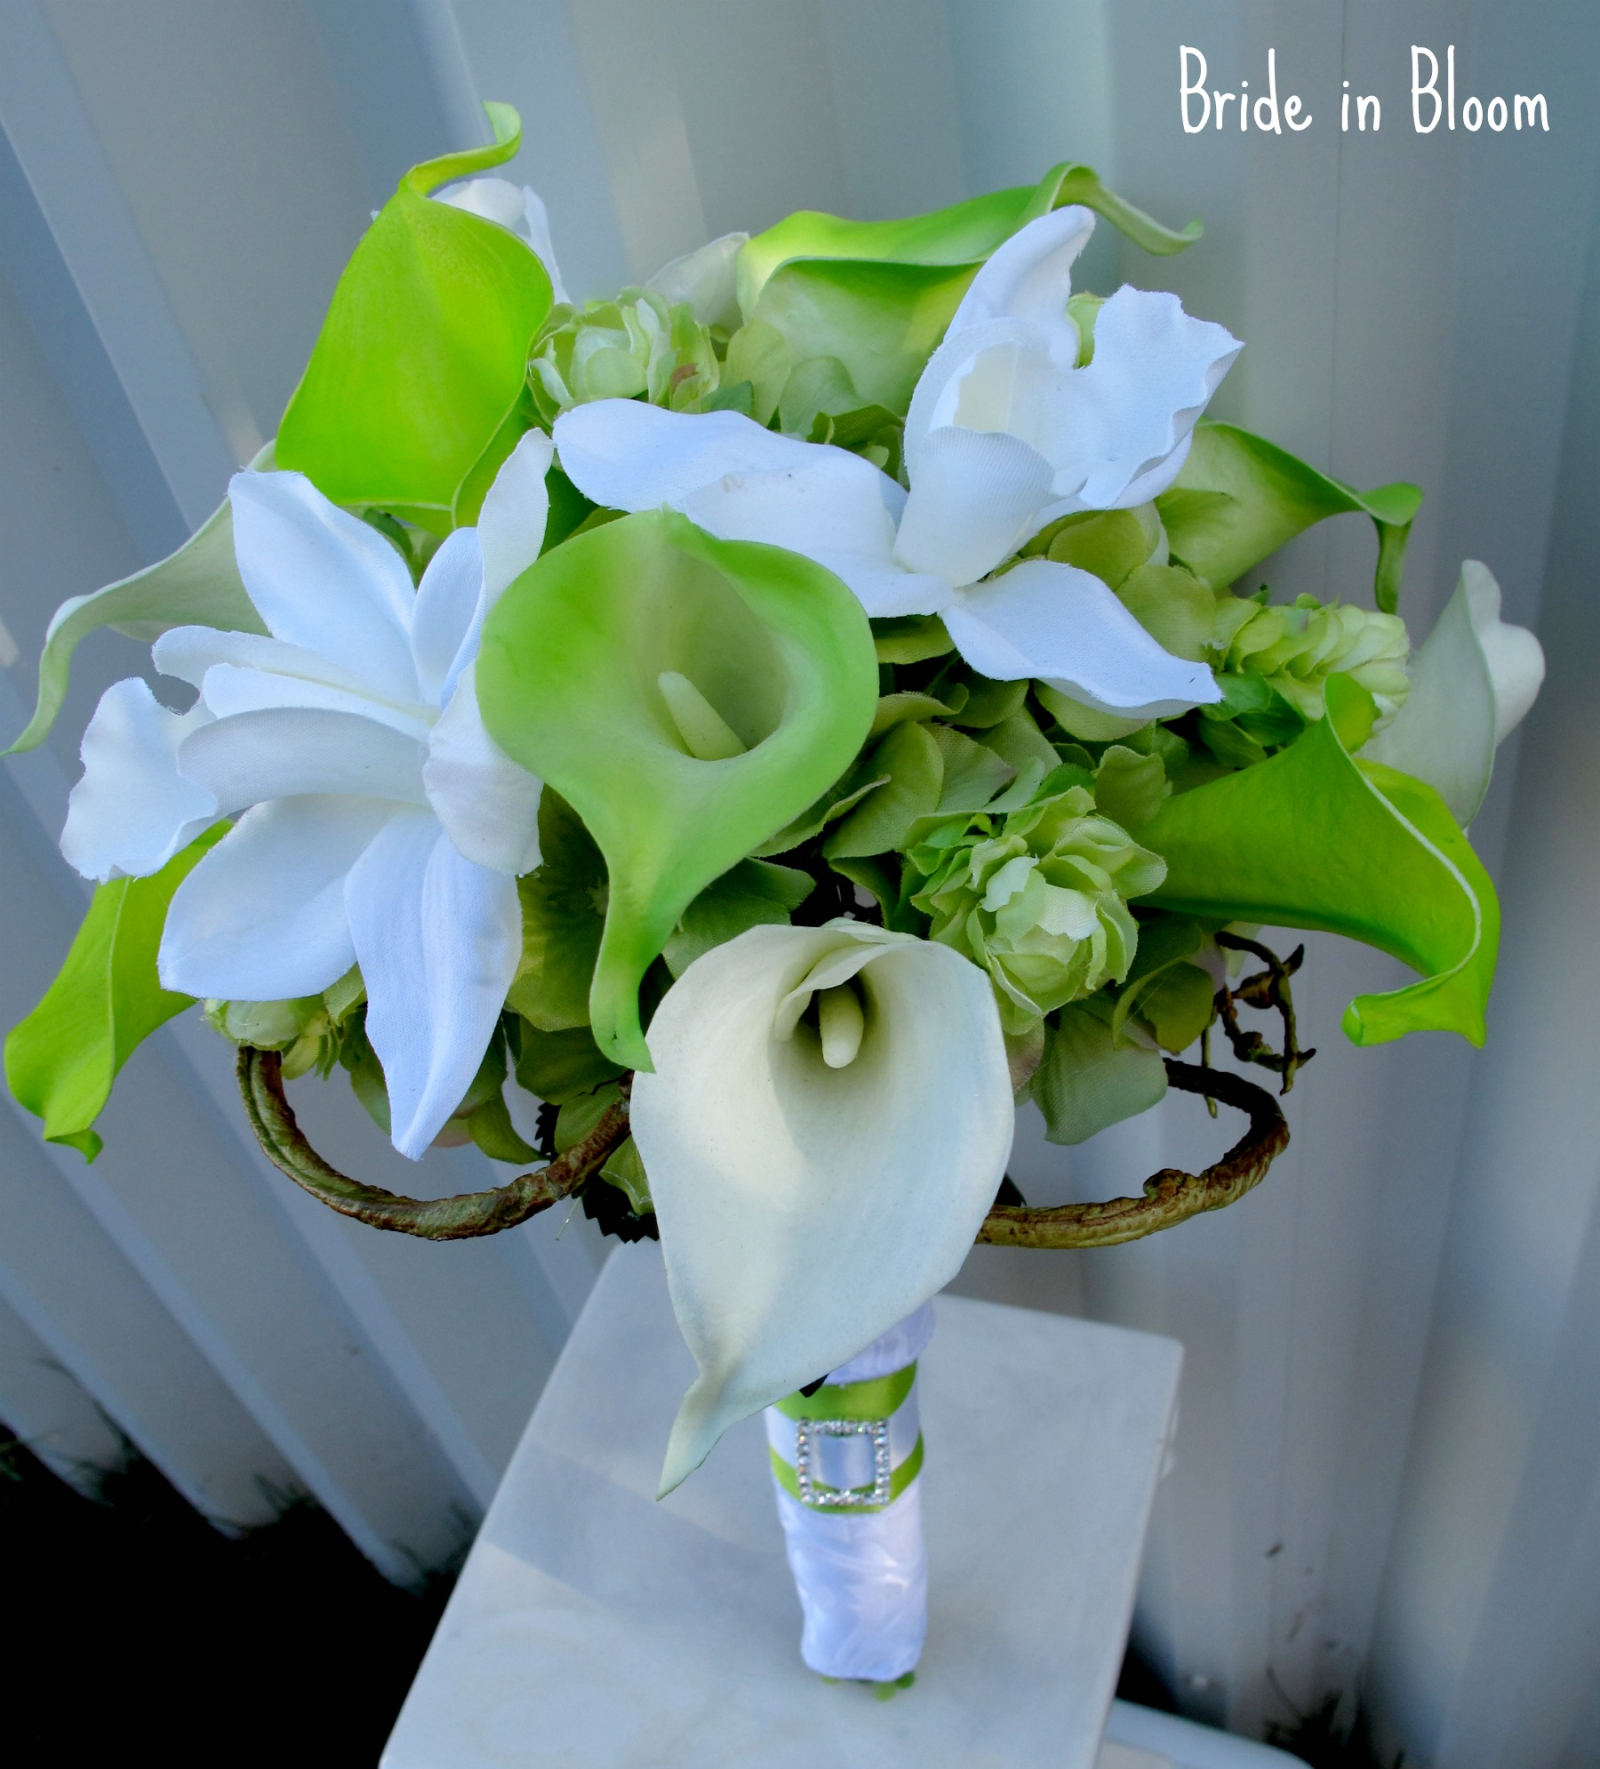 Lime green white calla lily orchid bridal bouquet bride in bloom lime green white calla lily orchid bridal bouquet silk wedding flowers izmirmasajfo